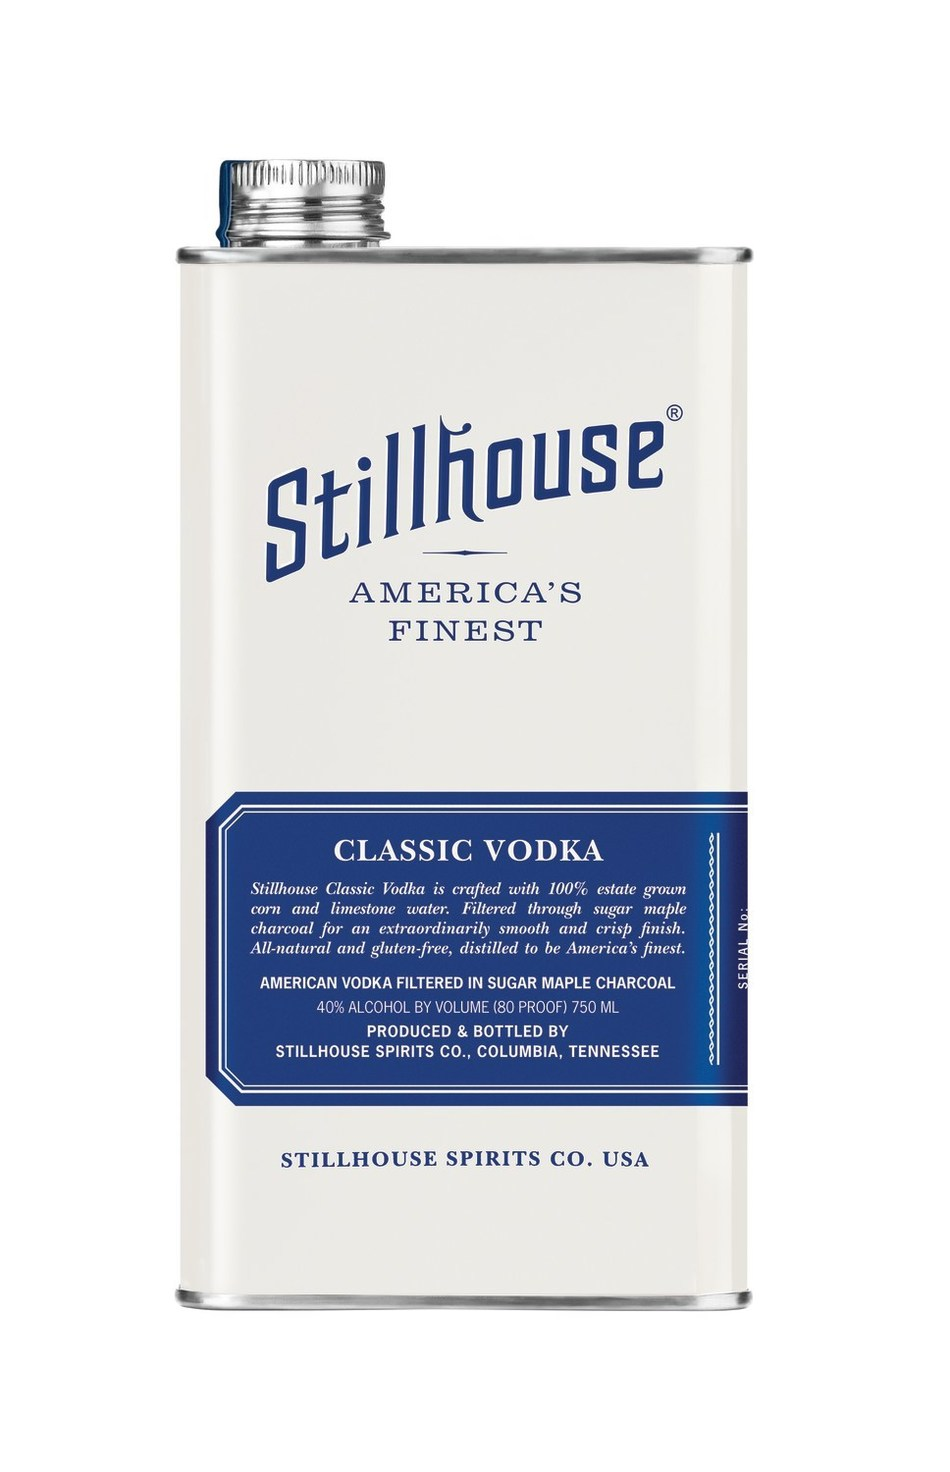 Encased in a striking bone white version of the brand's signature 100% stainless steel can, Stillhouse Classic Vodka is all-natural & gluten-free and is distilled from 100% estate grown corn & limestone water, then filtered to perfection through sugar maple charcoal, resulting in a polished finish.